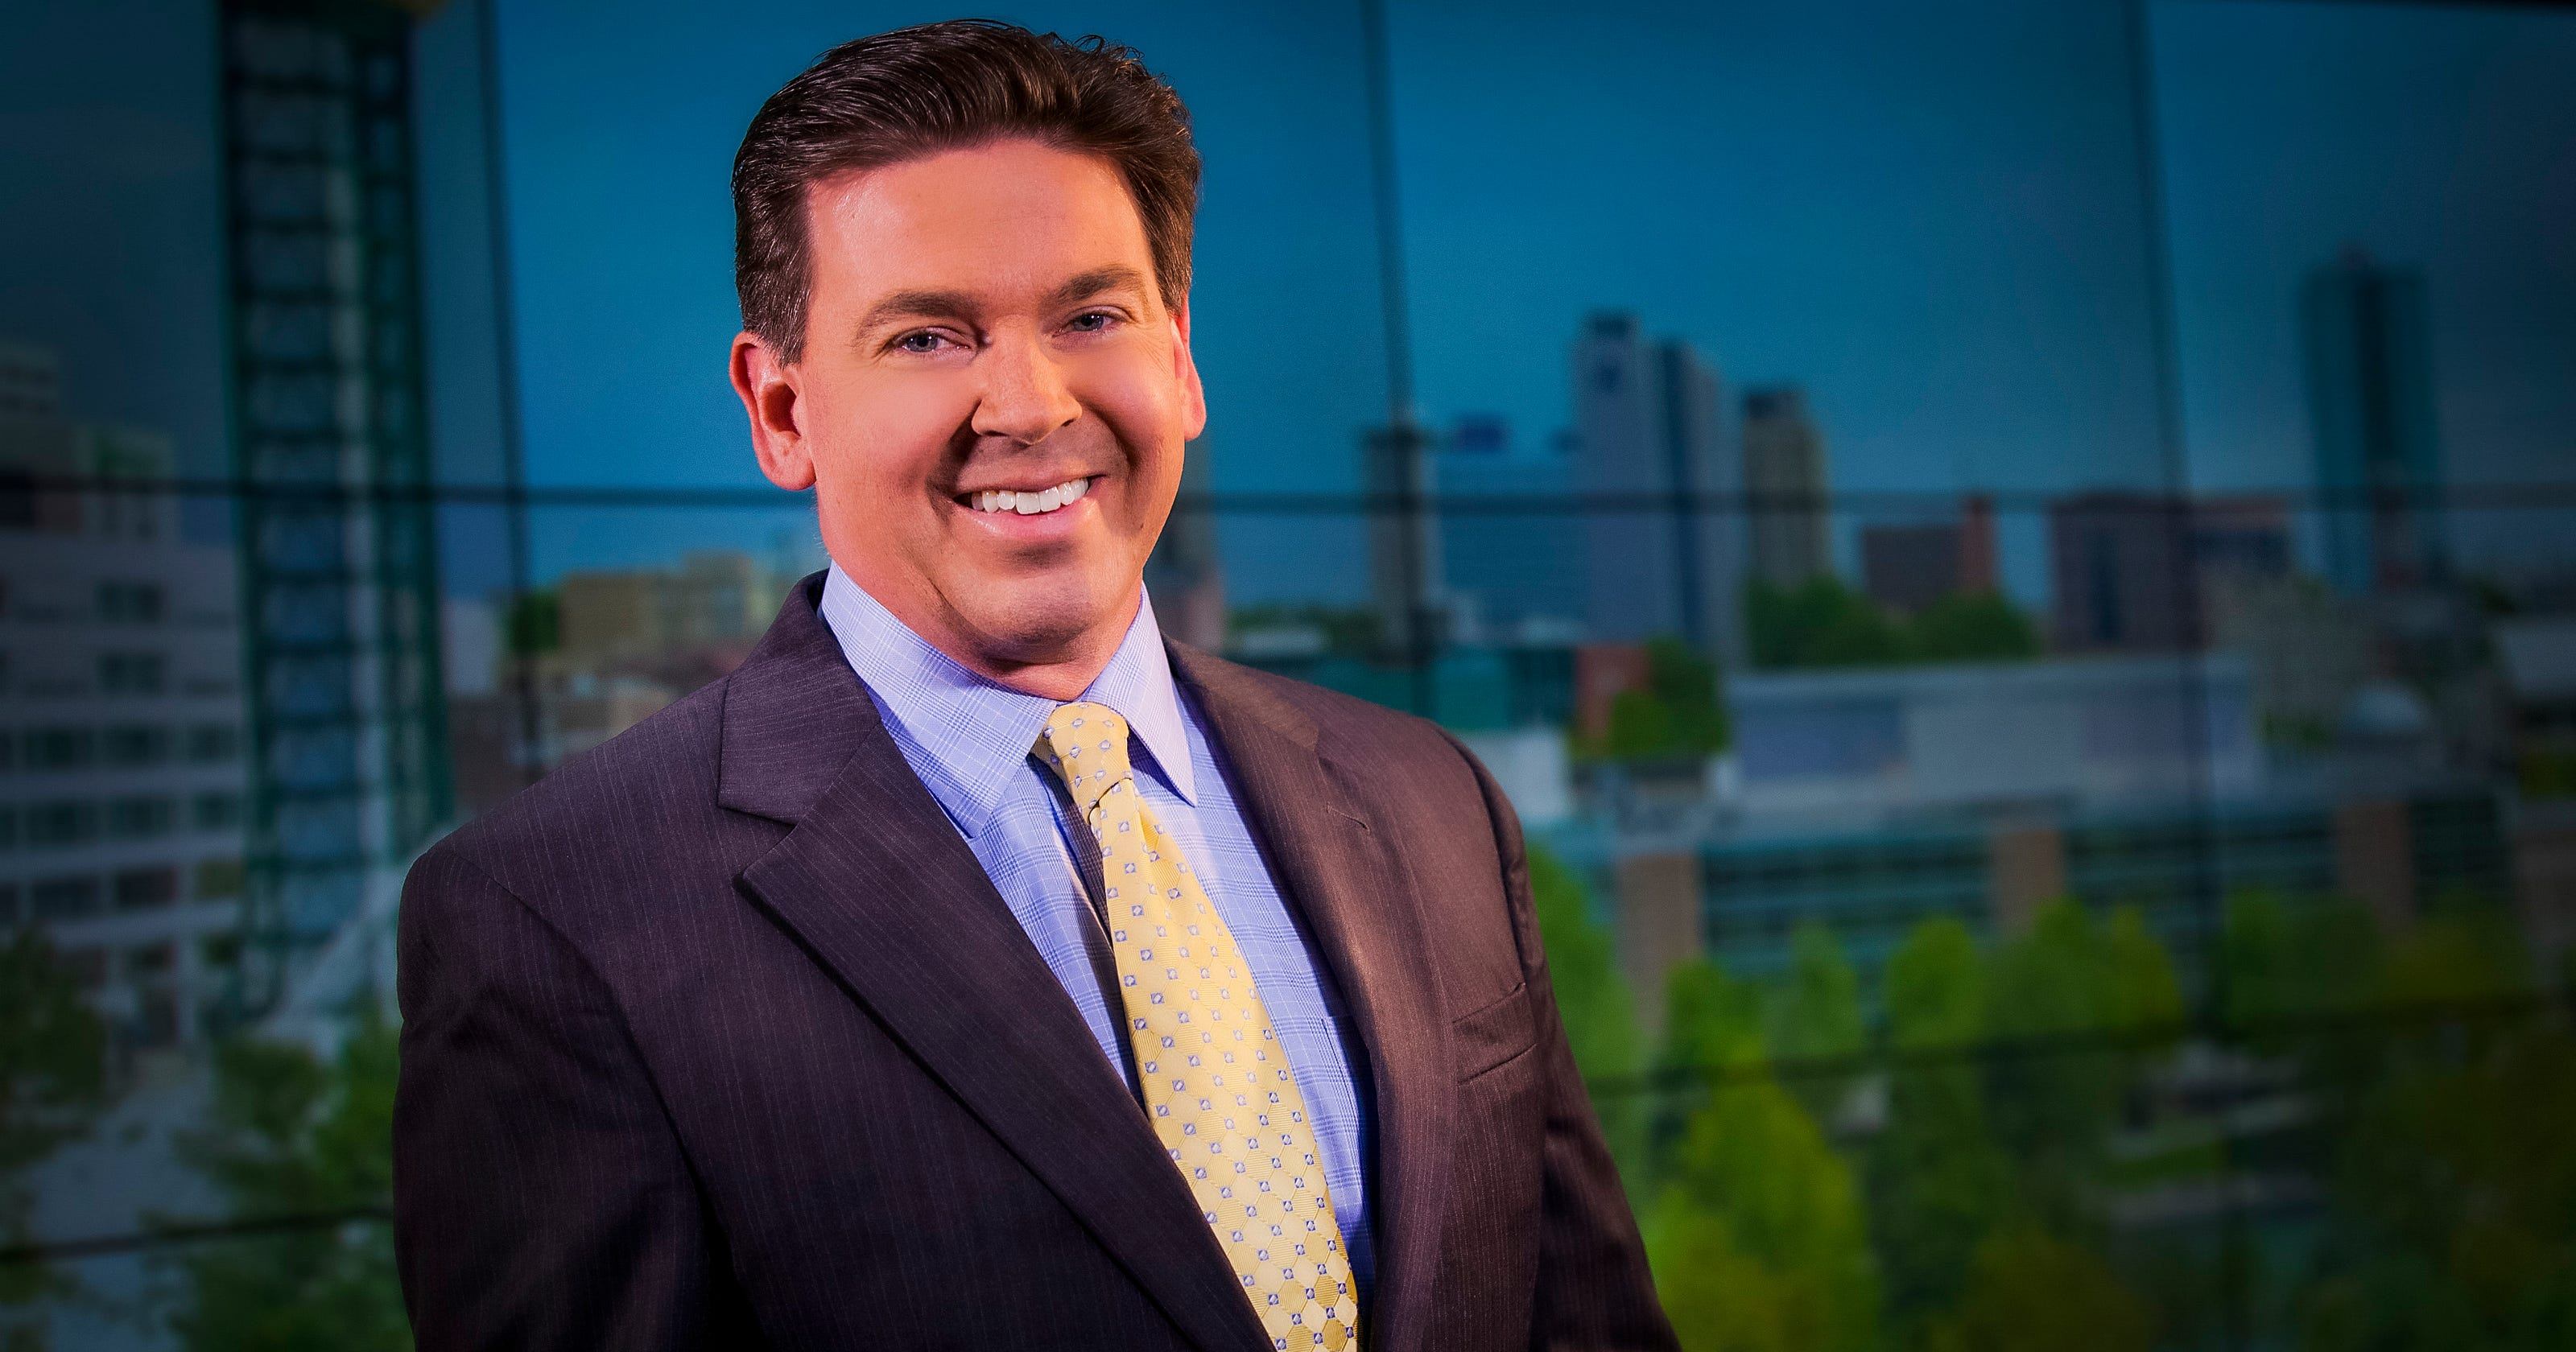 Bob Yarbrough, David Aldrich out at Knoxville's WVLT-TV